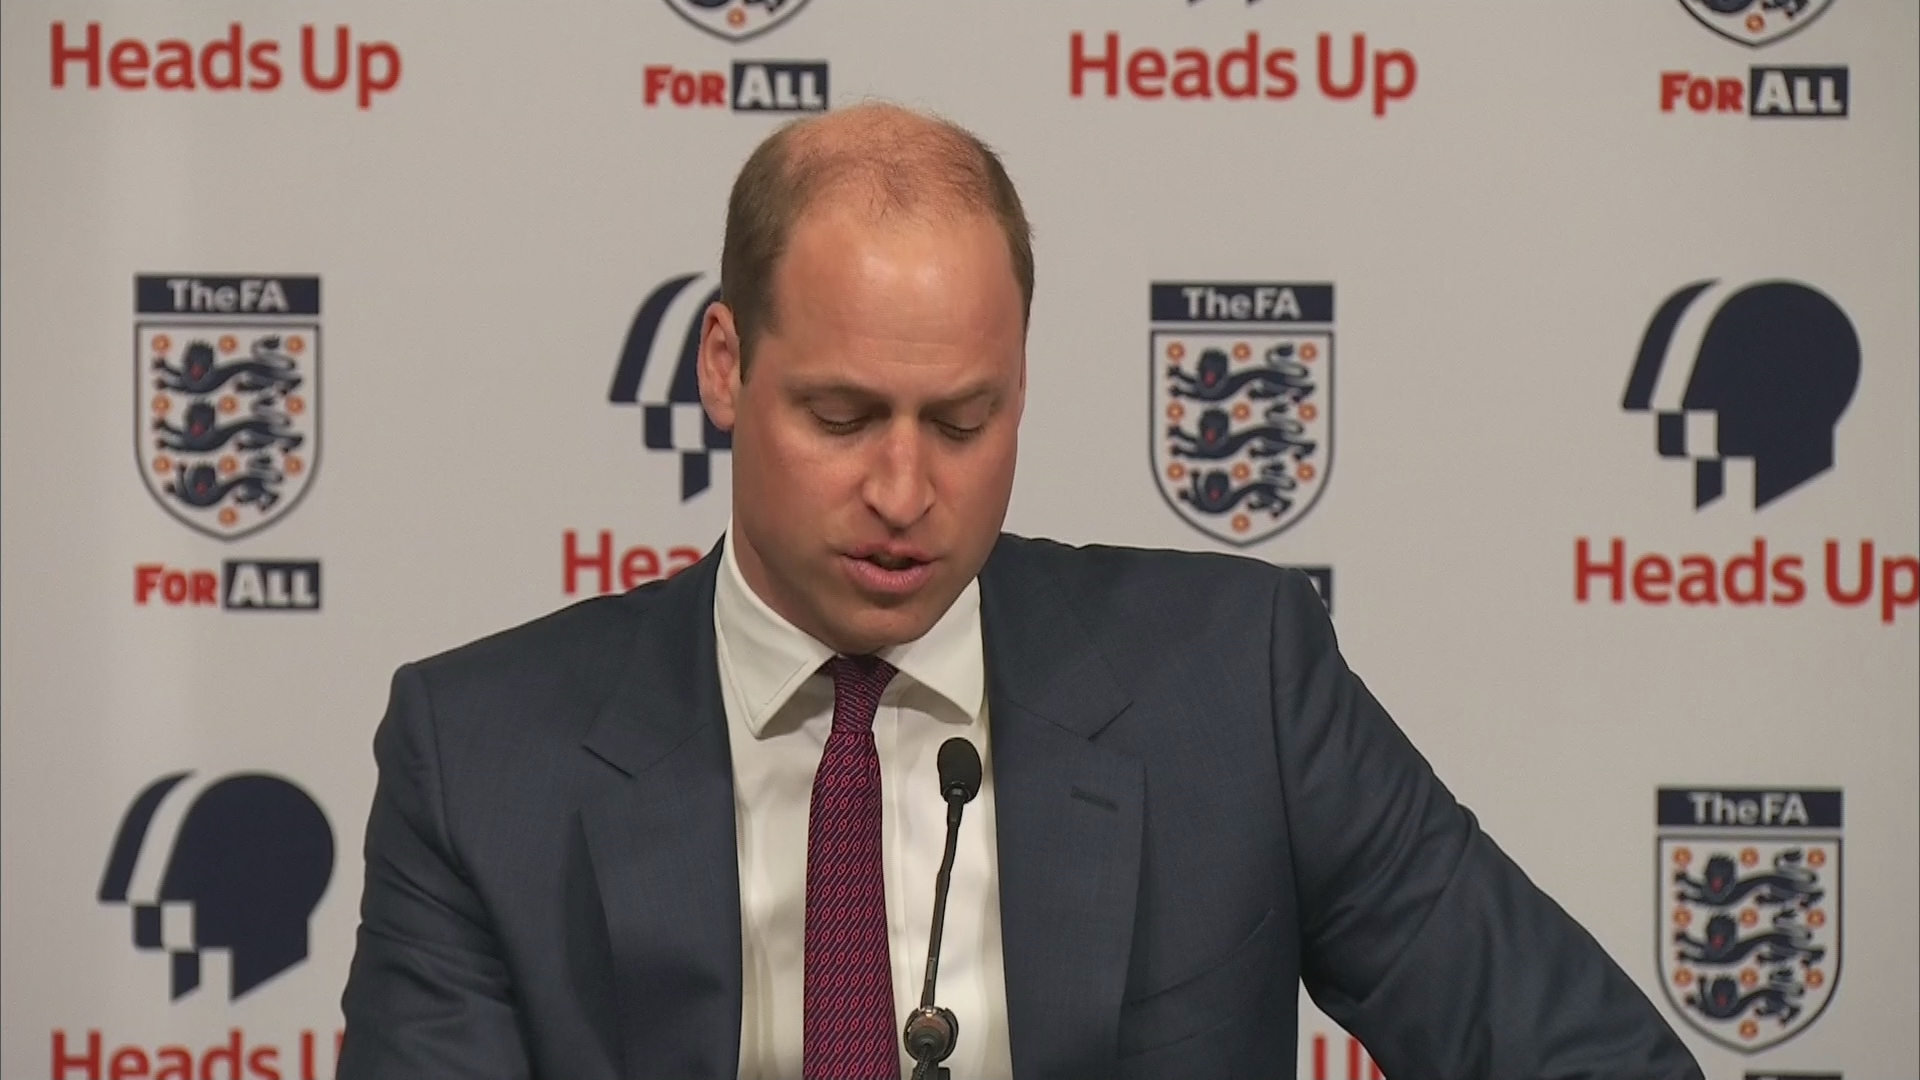 A Royal Team Talk: Prince William And Football Stars Get Real About Mental Health